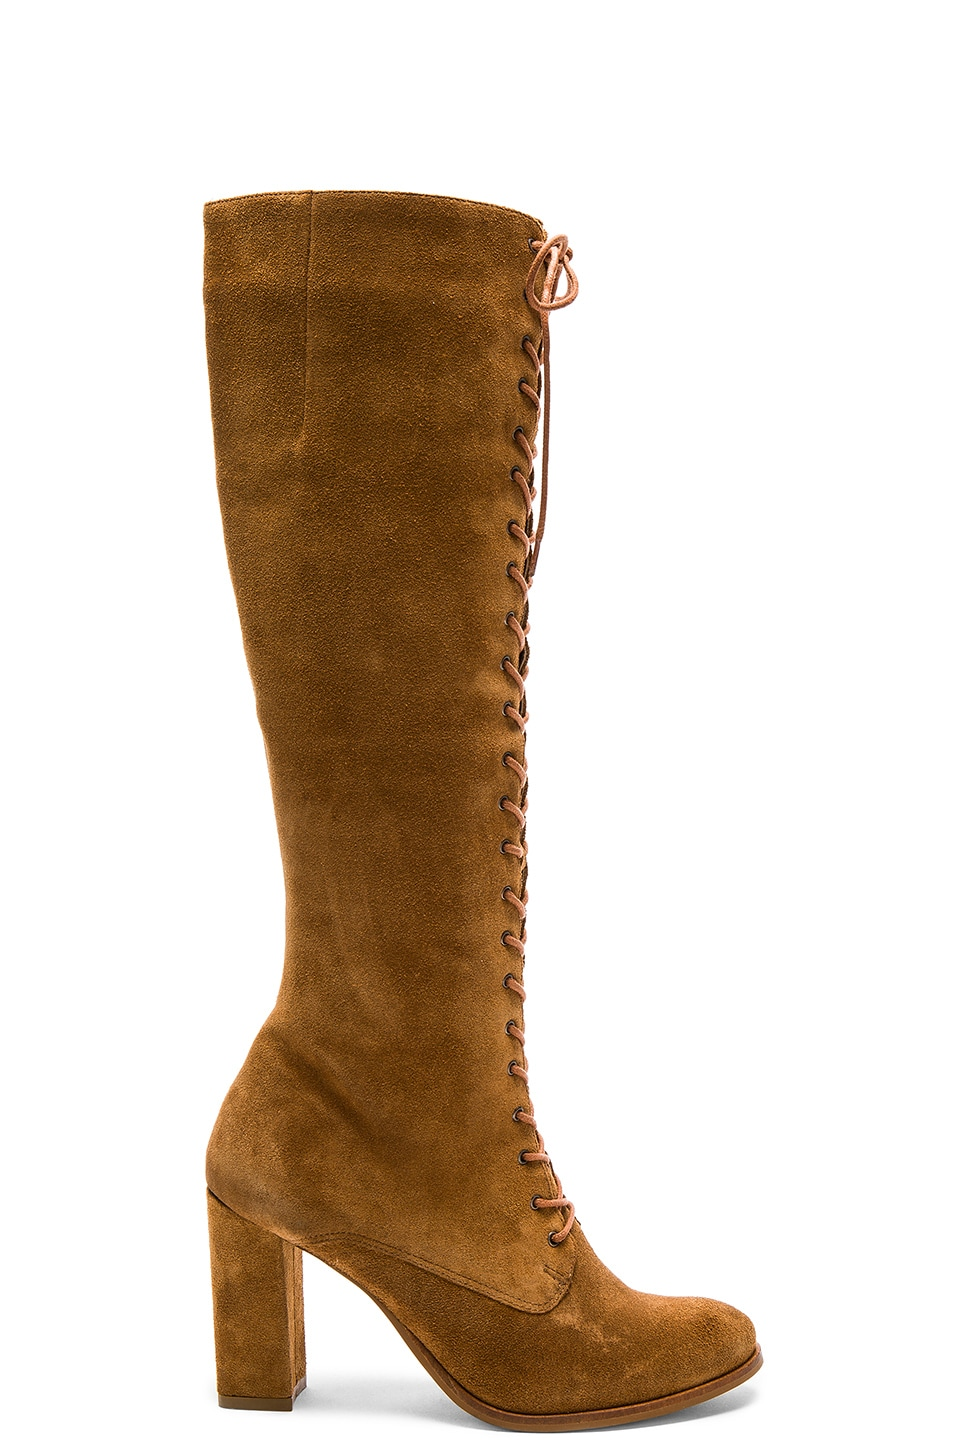 Matisse Princely Boots in Fawn